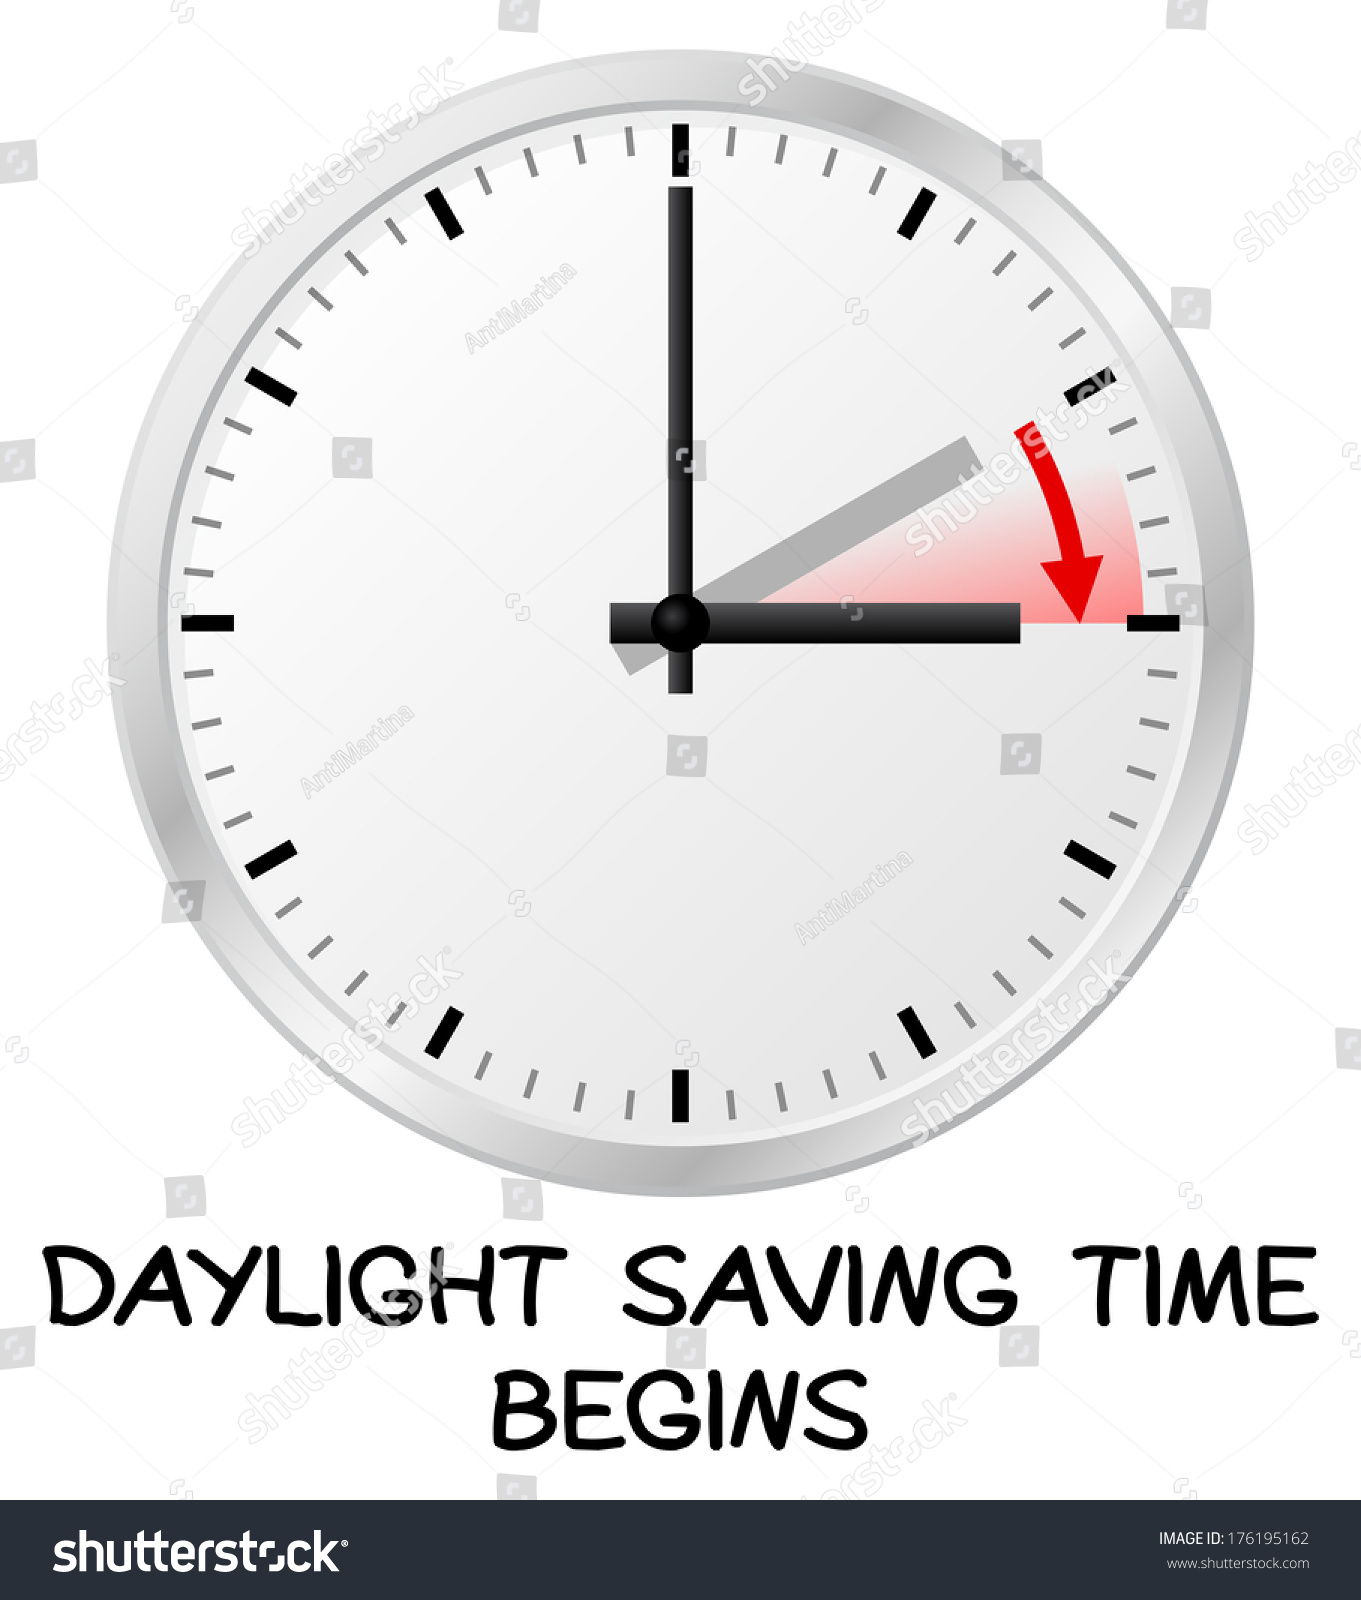 daylight saving time Find out the dates for daylight saving time, 2015 through 2017, and why we turn the clocks forward one hour.